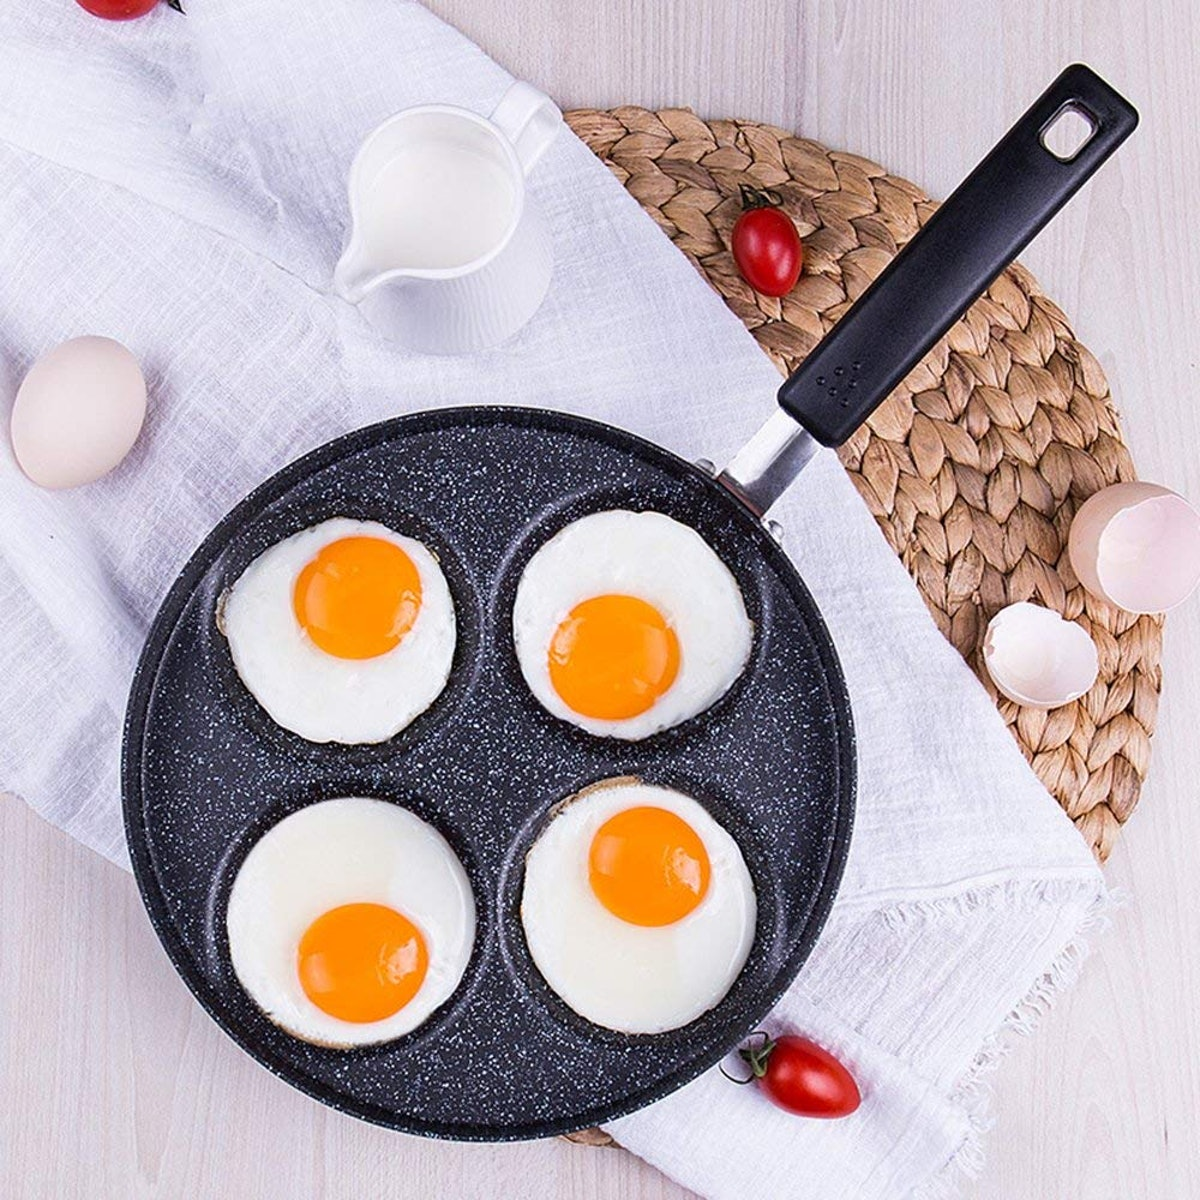 MyLifeUNIT 4-Cup Egg Frying Pan